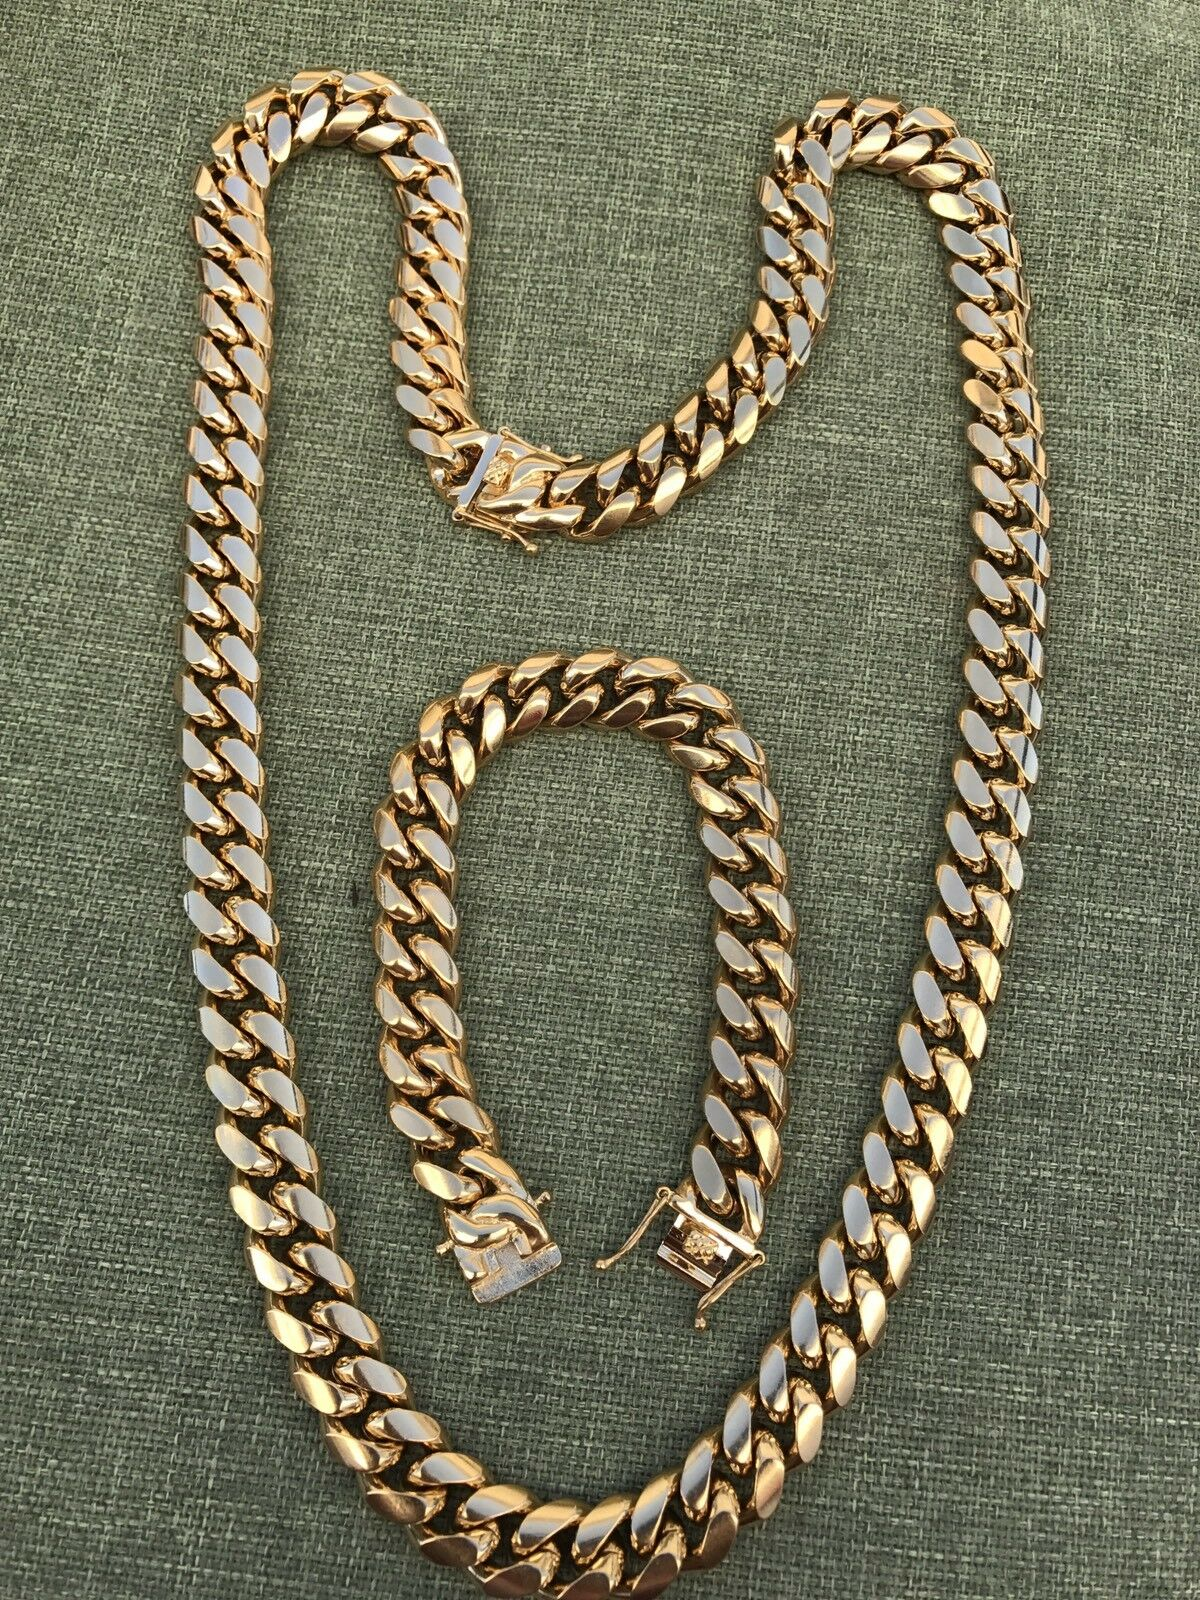 14mm Men's Miami Cuban Link Bracelet & Chain Set 18k Gold Pl